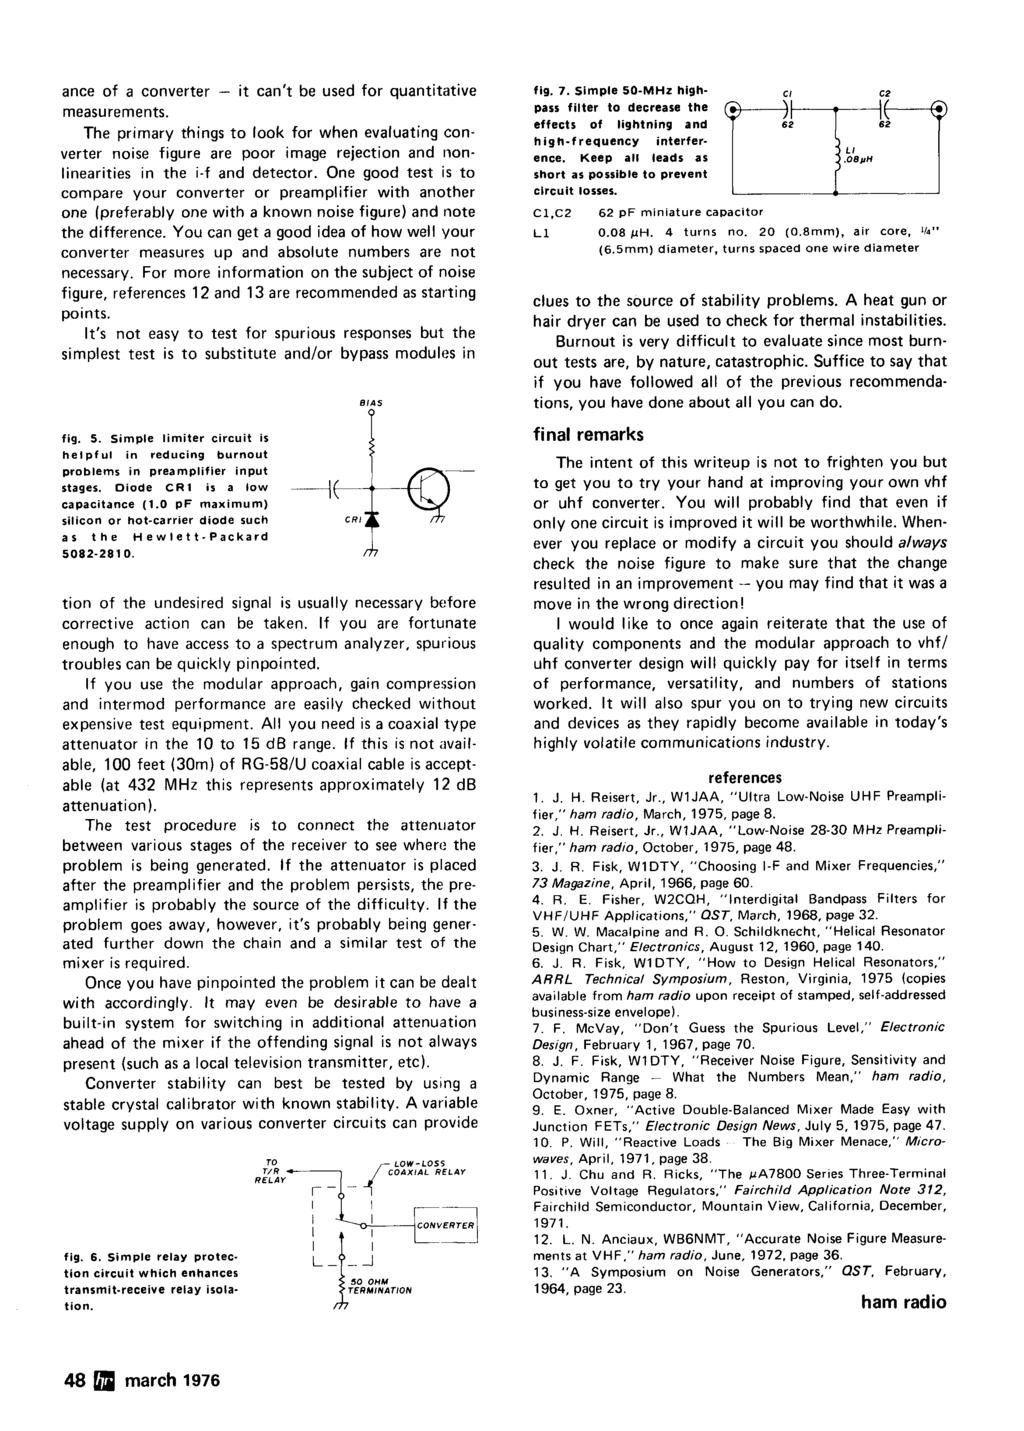 Radio P Crystal Oscillators Improving Vhfluhf Receivers 44 March Water Activated Relay Uses Transistor Bc108 Simple Schematic Diagram Ance Of A Converter It Cant Be Used For Quantitative Measurements